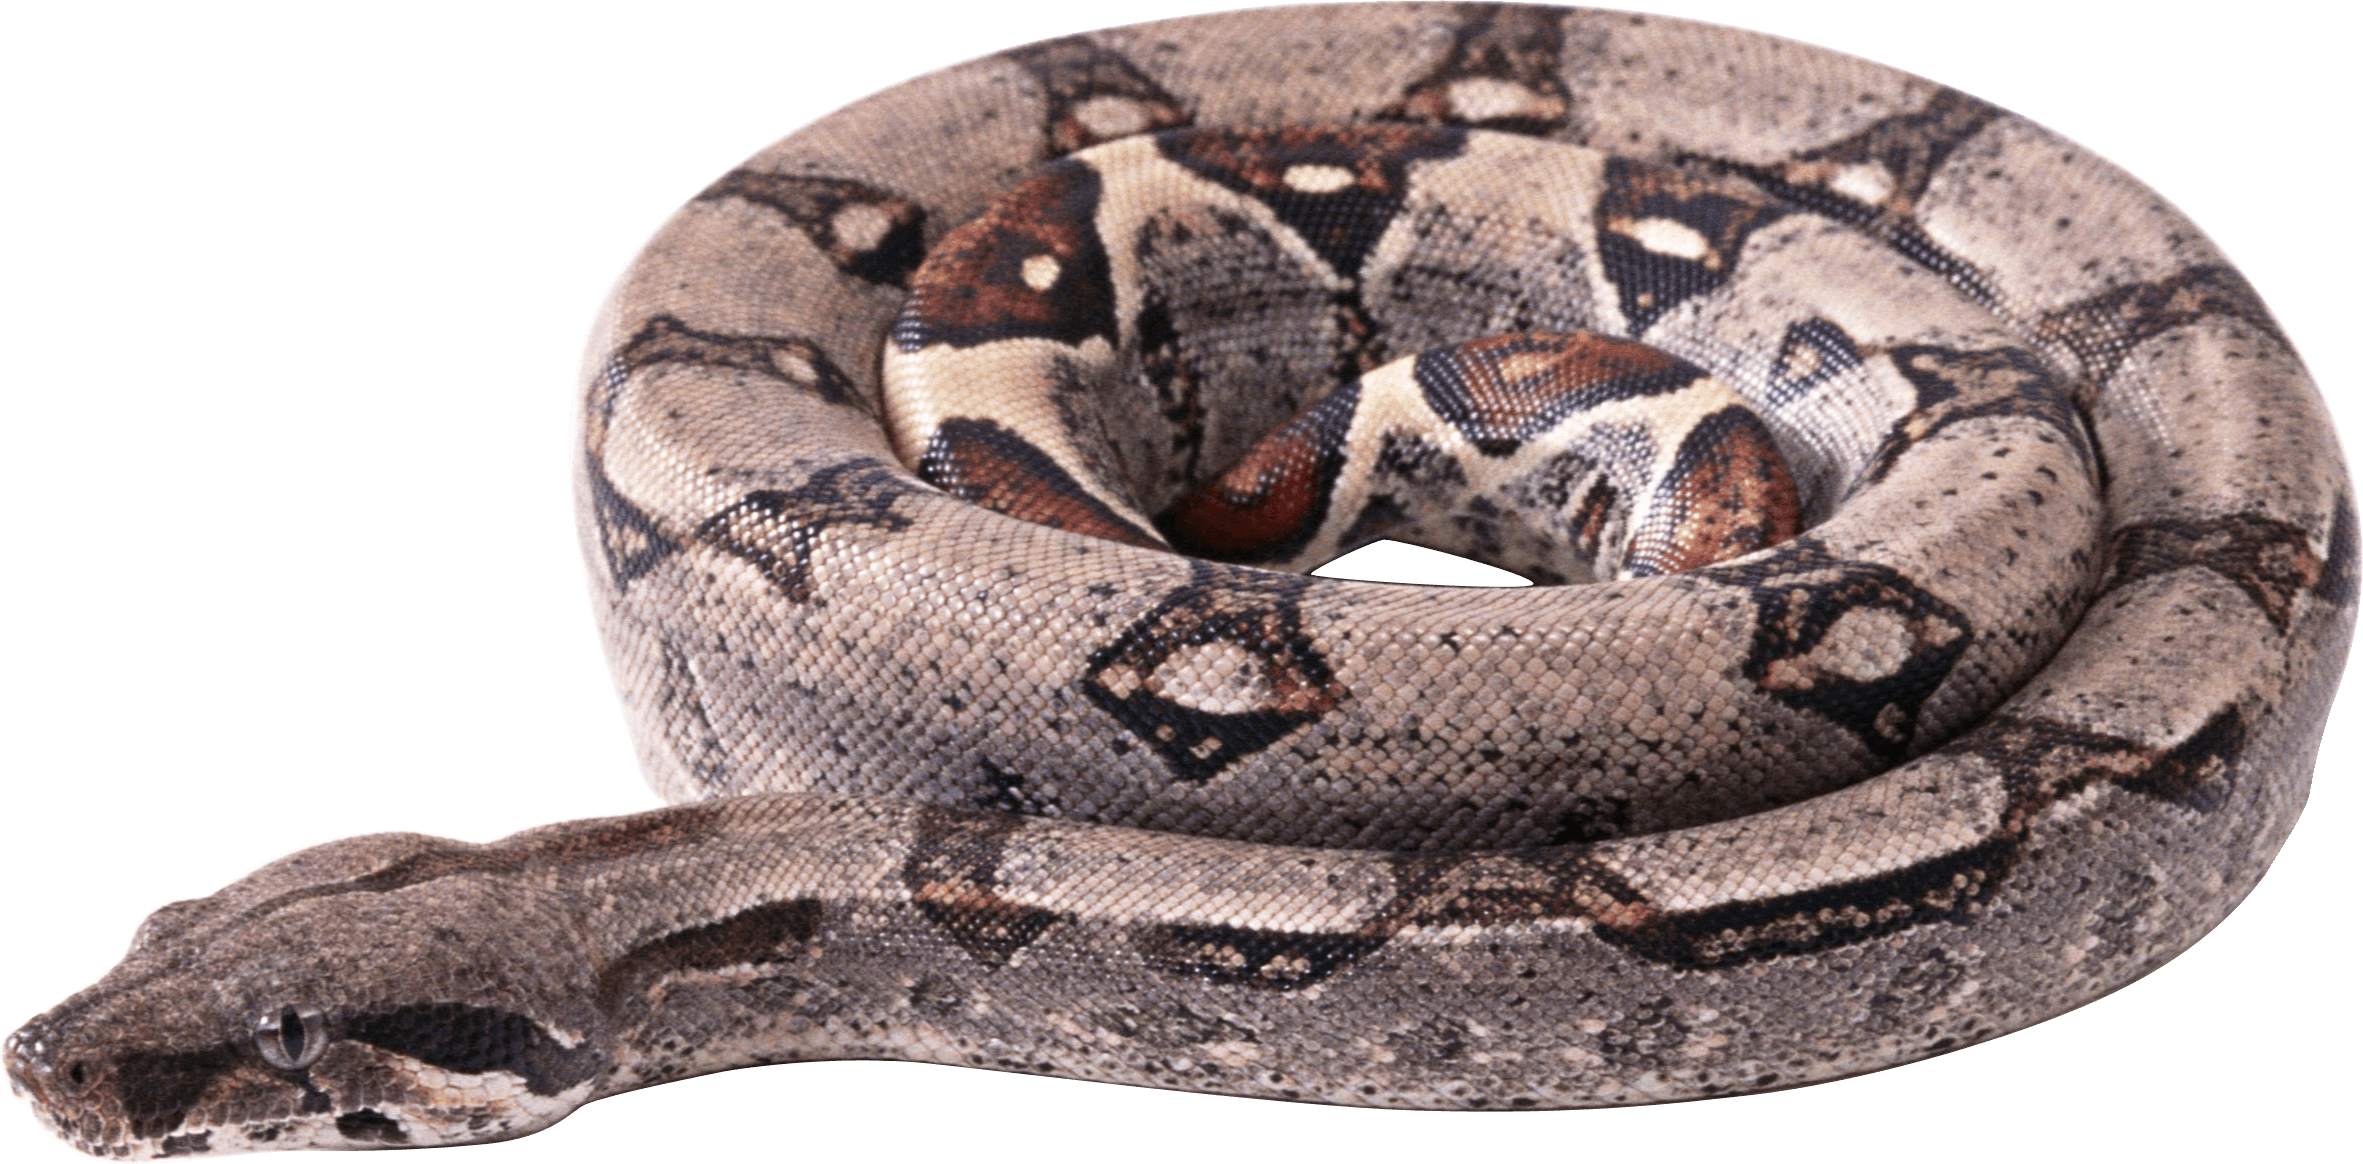 Snake clipart family. Curling png image purepng